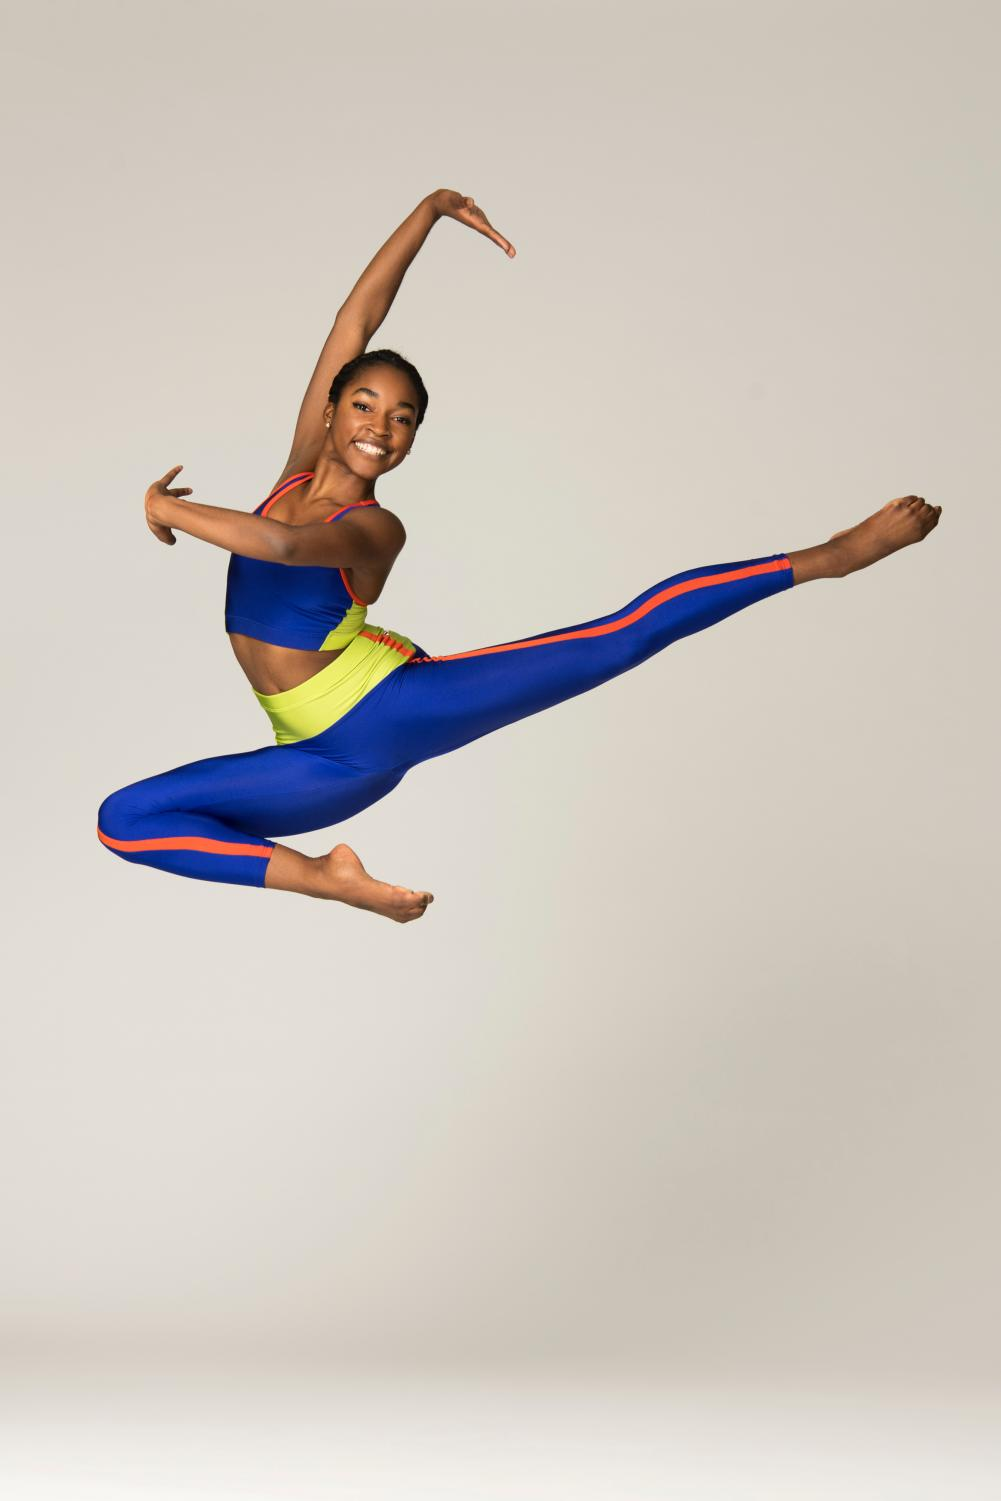 Ashley Simpson is an Ailey/Fordham B.F.A. dance major.